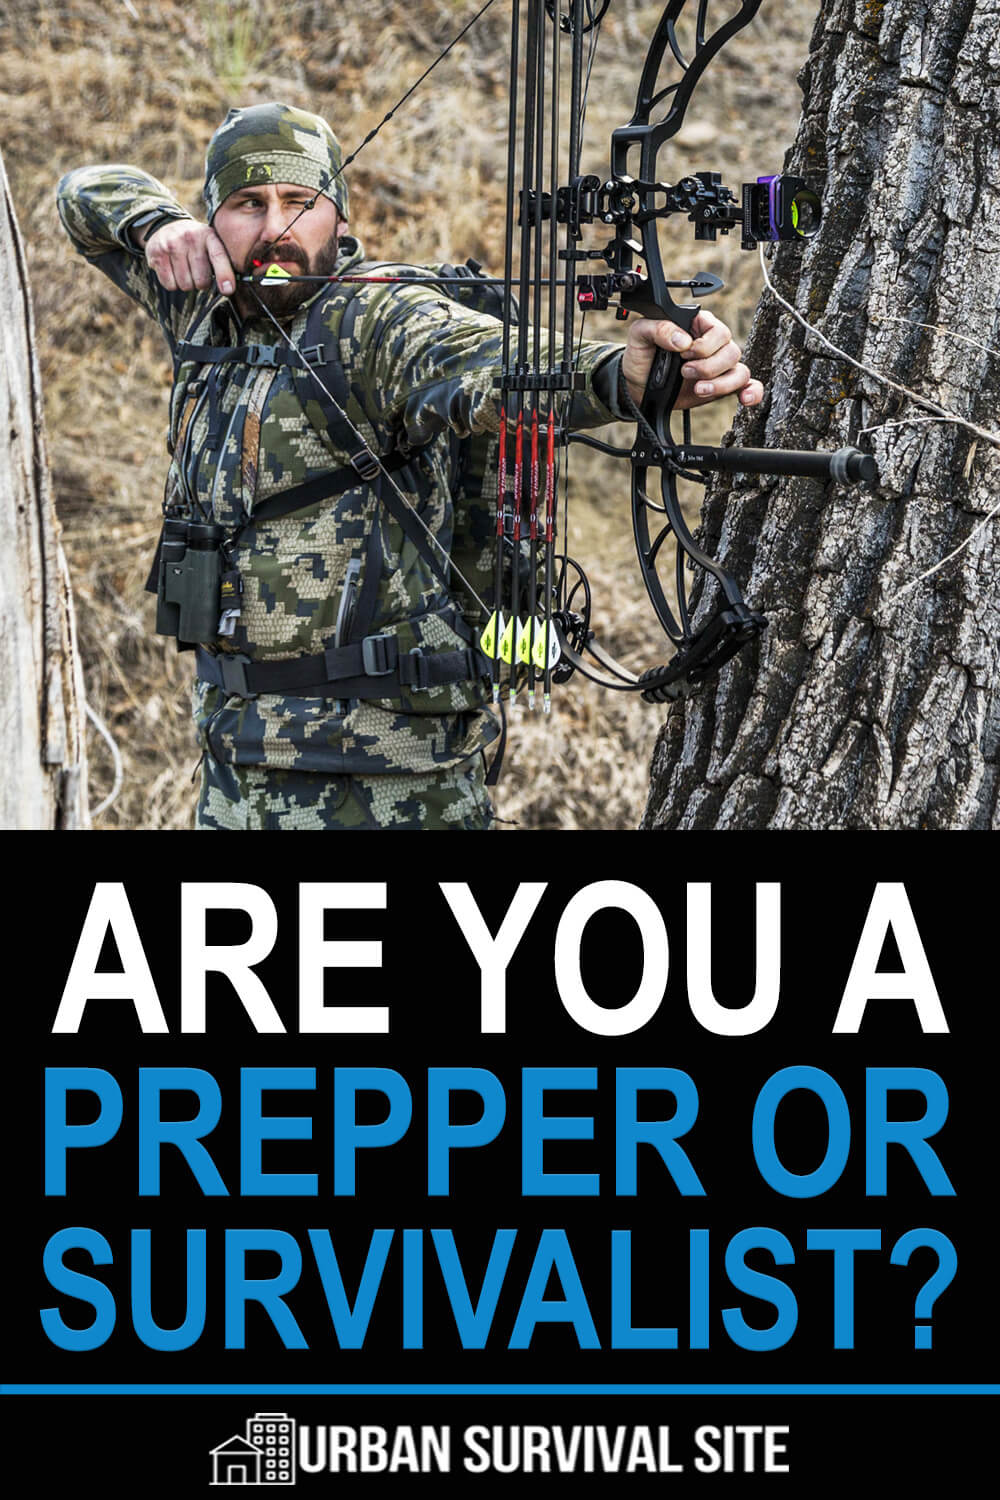 Are You A Prepper Or Survivalist?